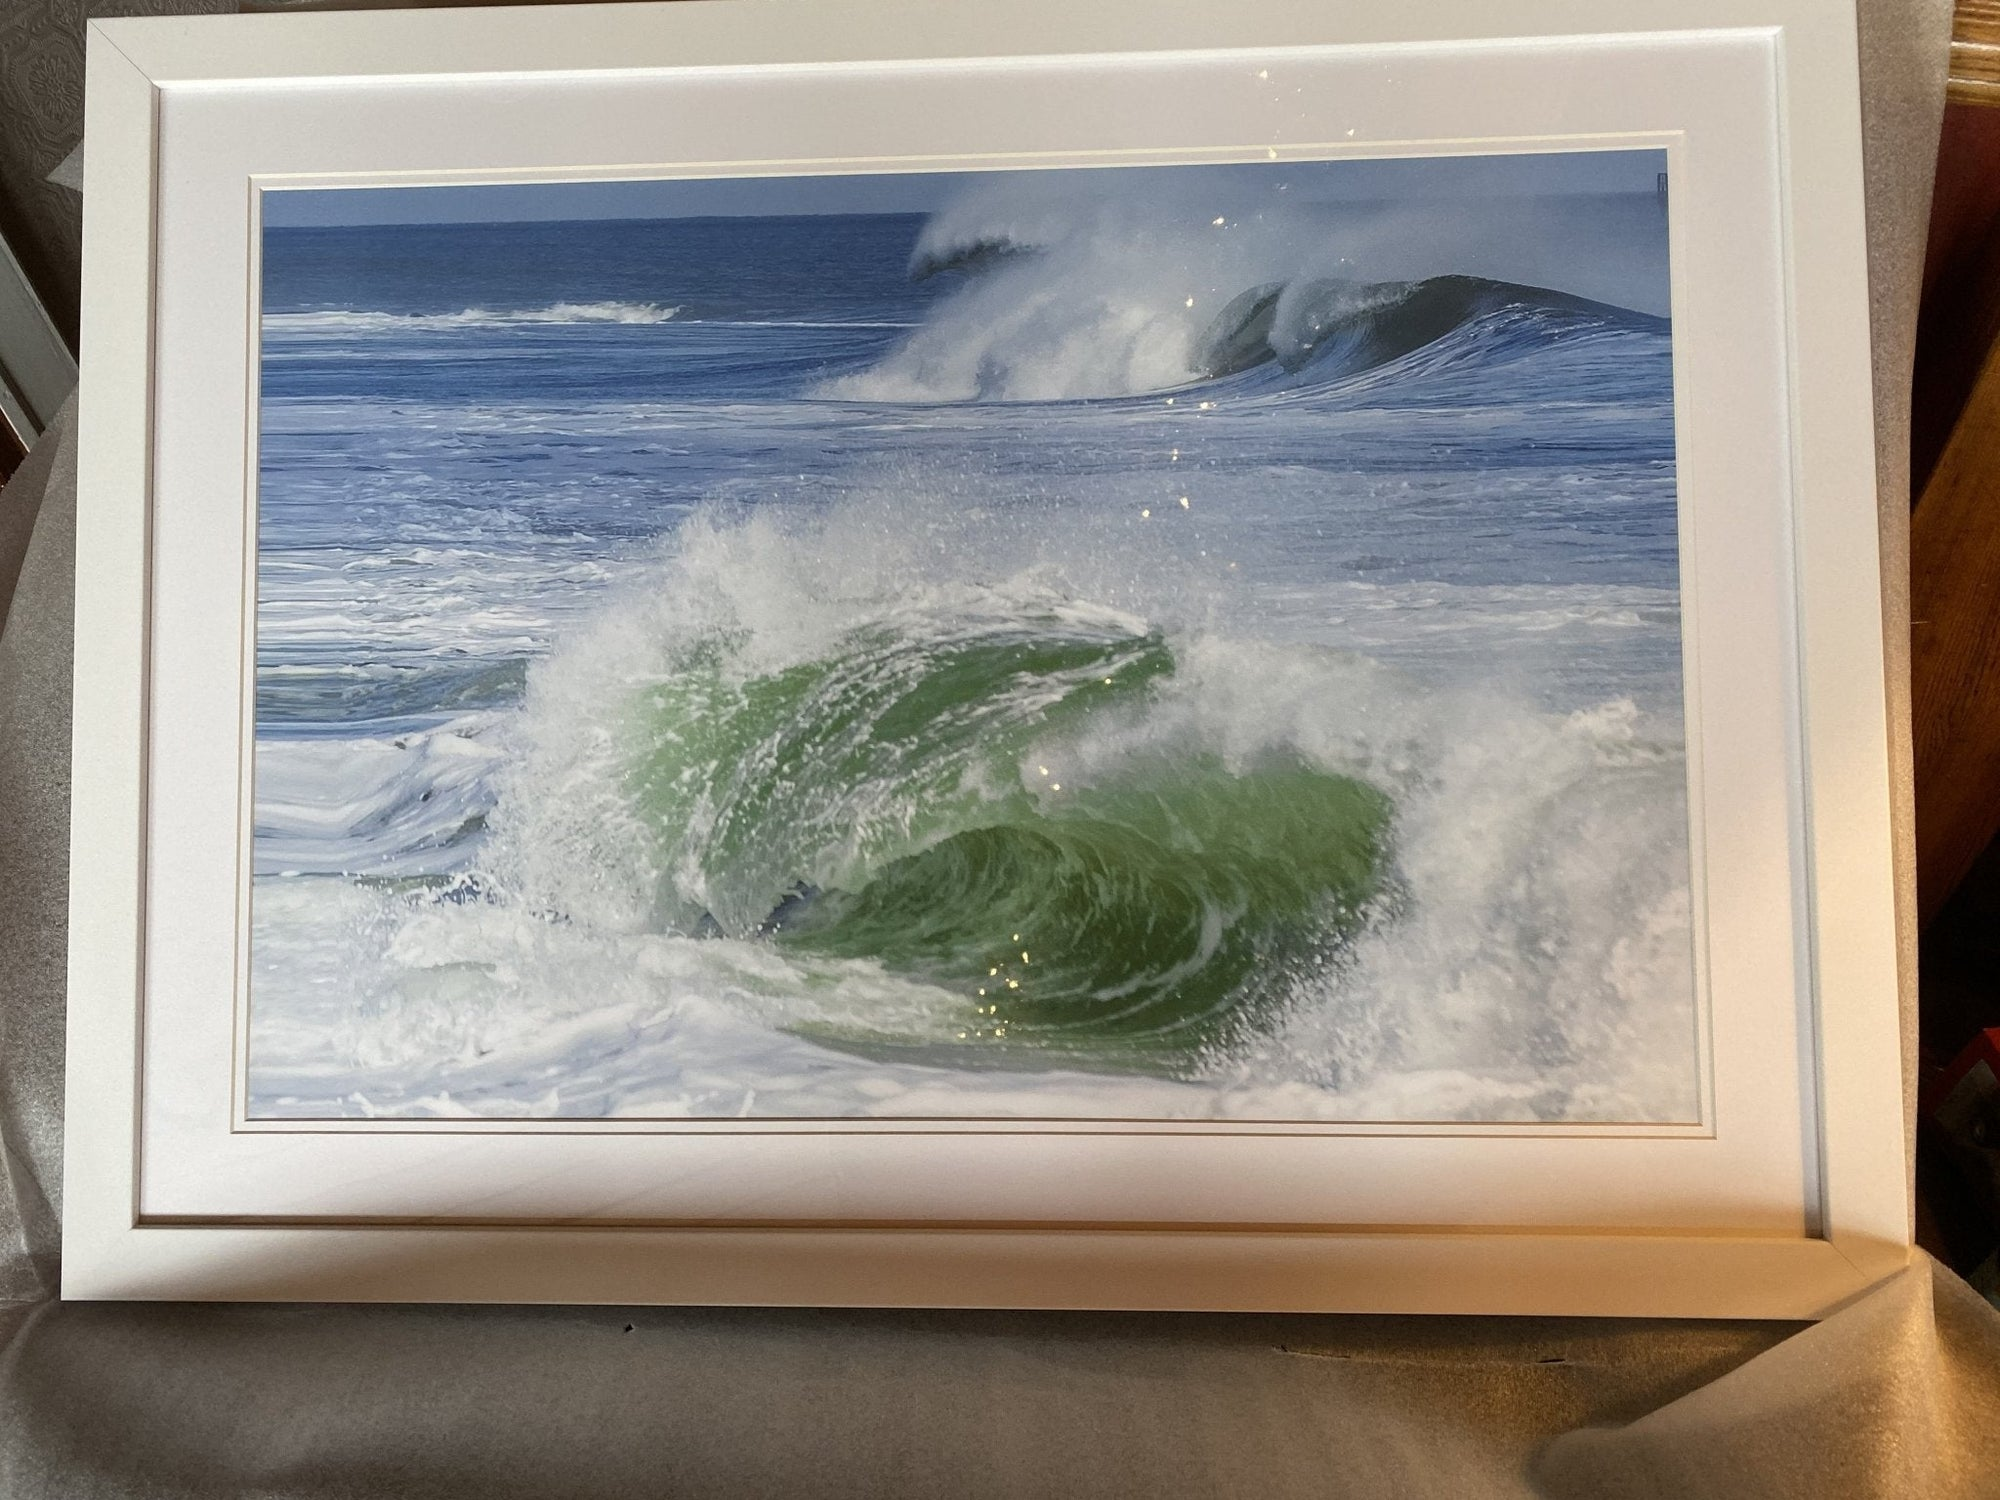 In Stock Emerald Wave 38 x 28 or 22 x 19 - Bill McKim Photography -Jersey Shore whale watch tours